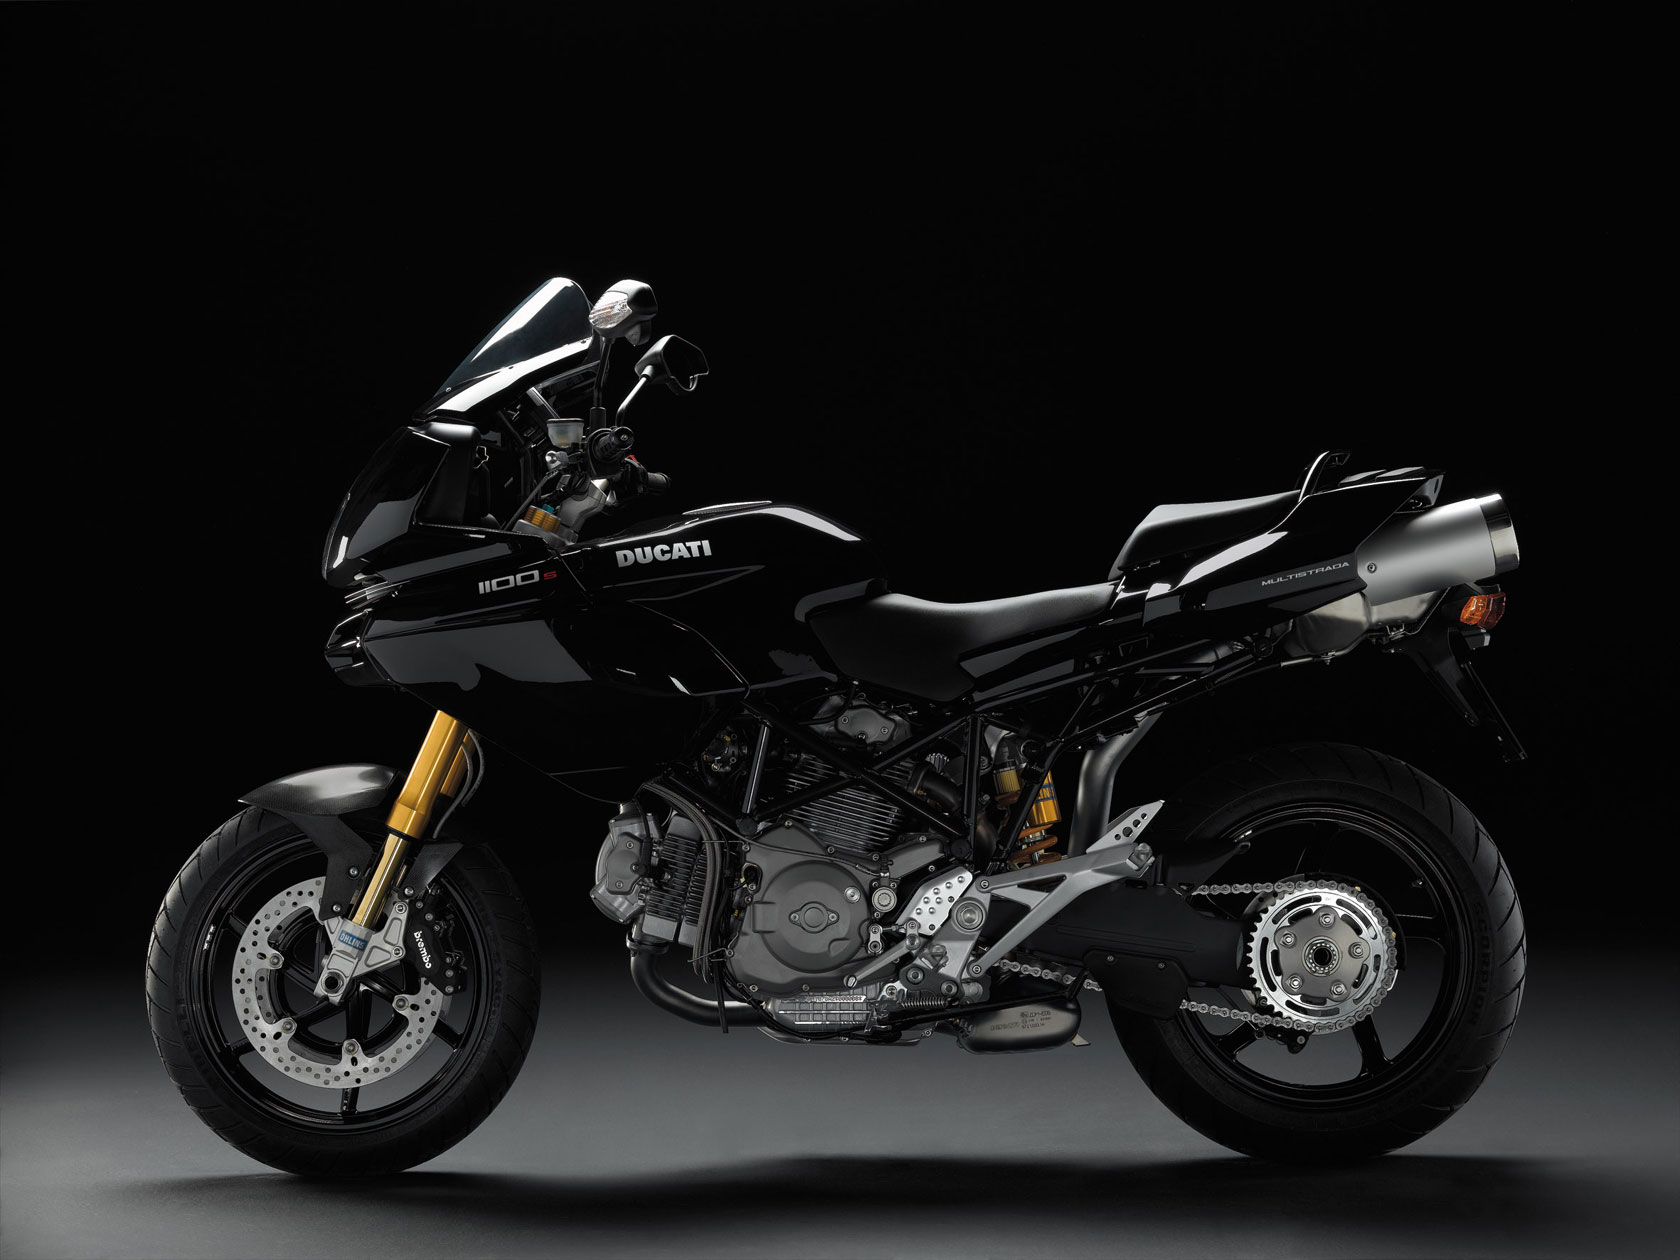 Ducati Multistrada 1100S Black Street Fighter Edition